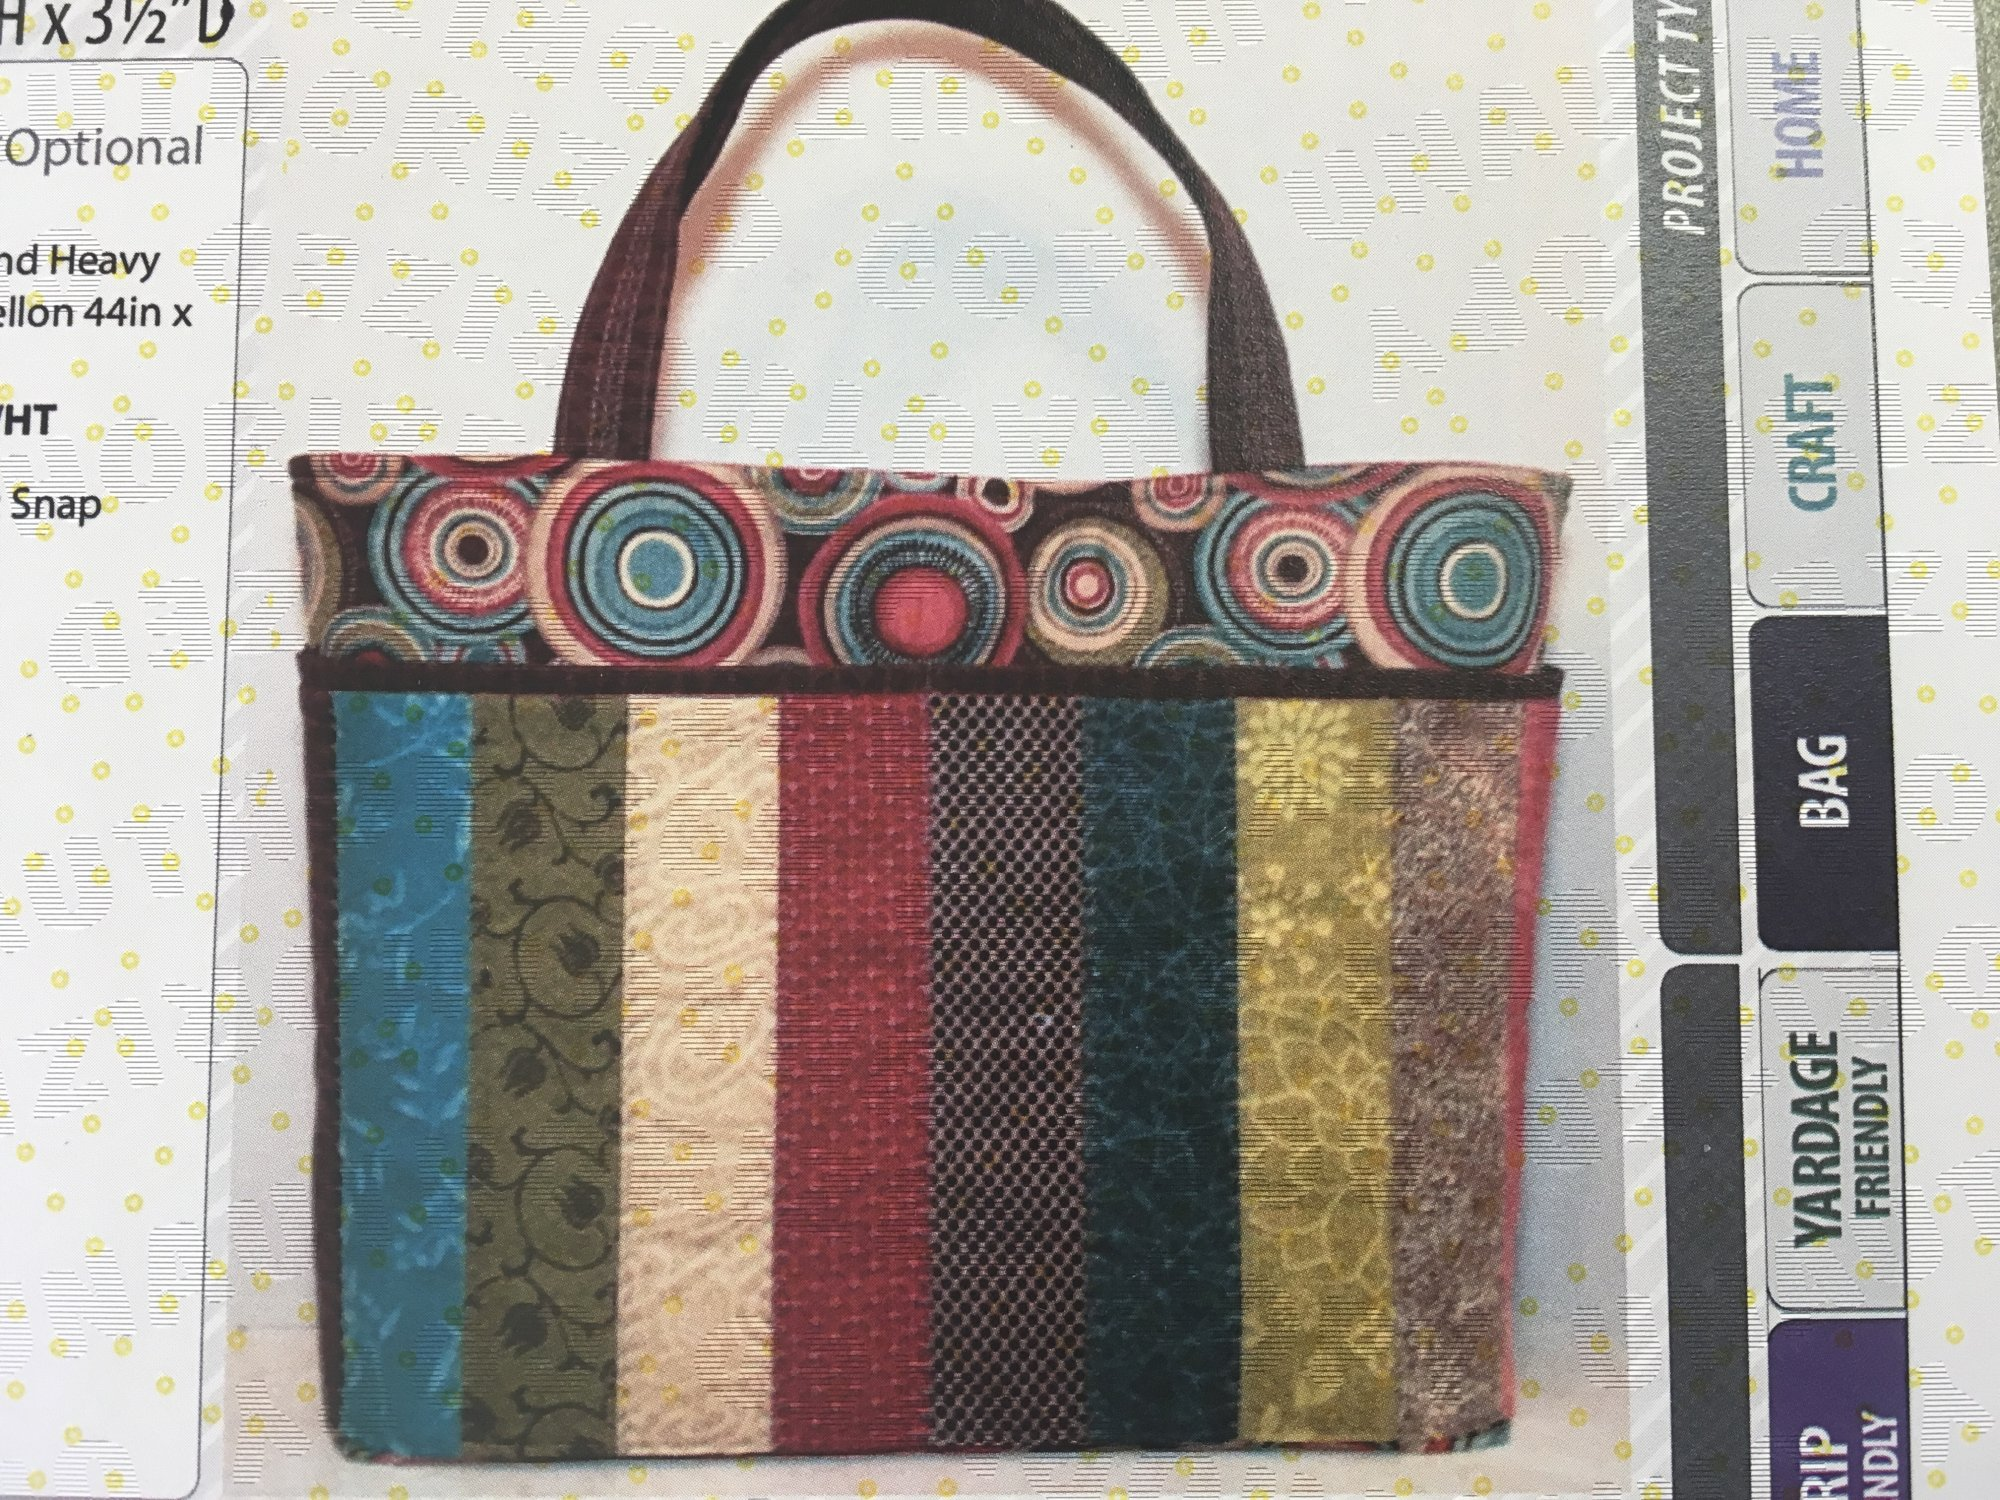 Sew Strippy Tote. CLPCLA036 by Cut Loose Patterns